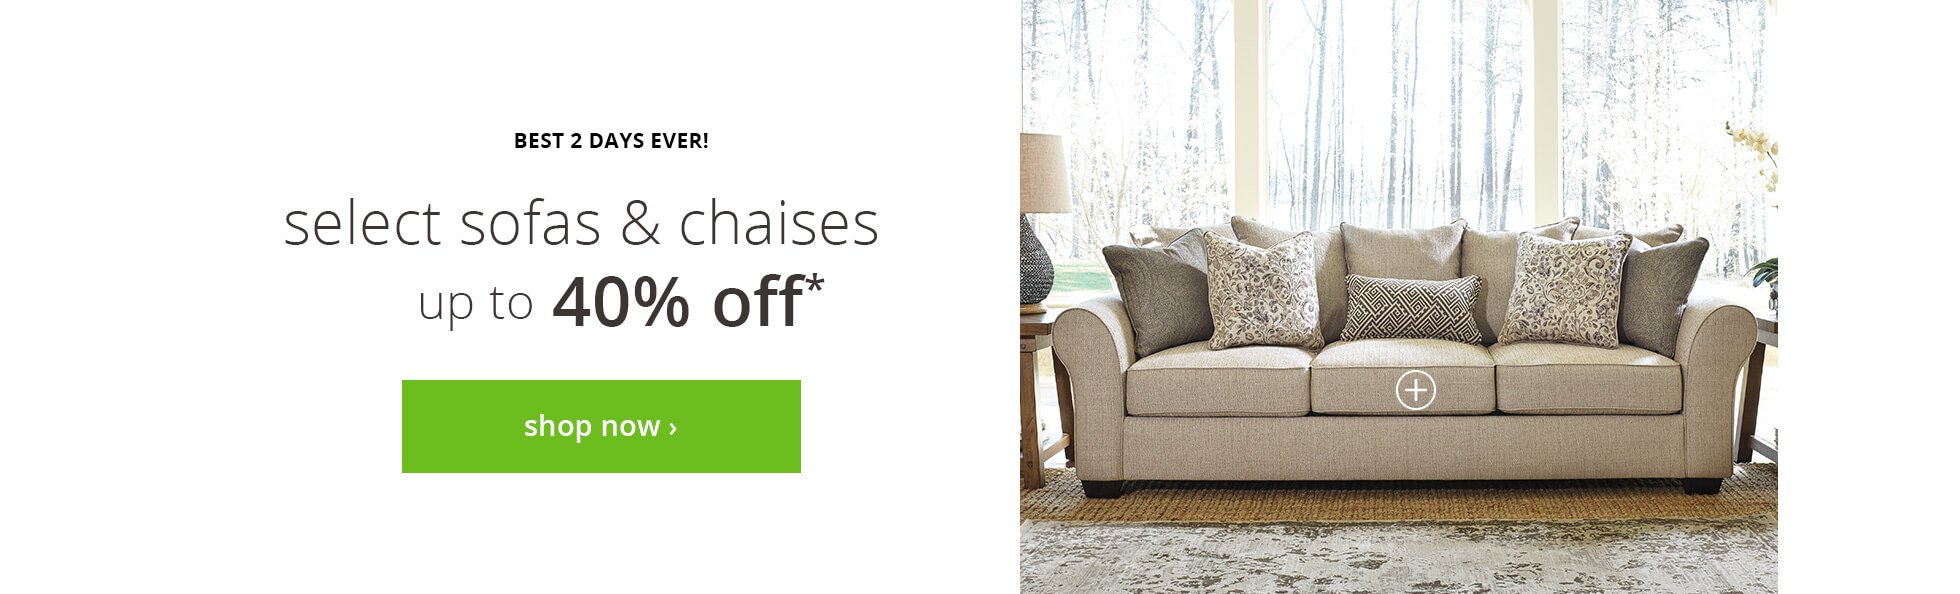 Sofas and Chaises up to 25% off*